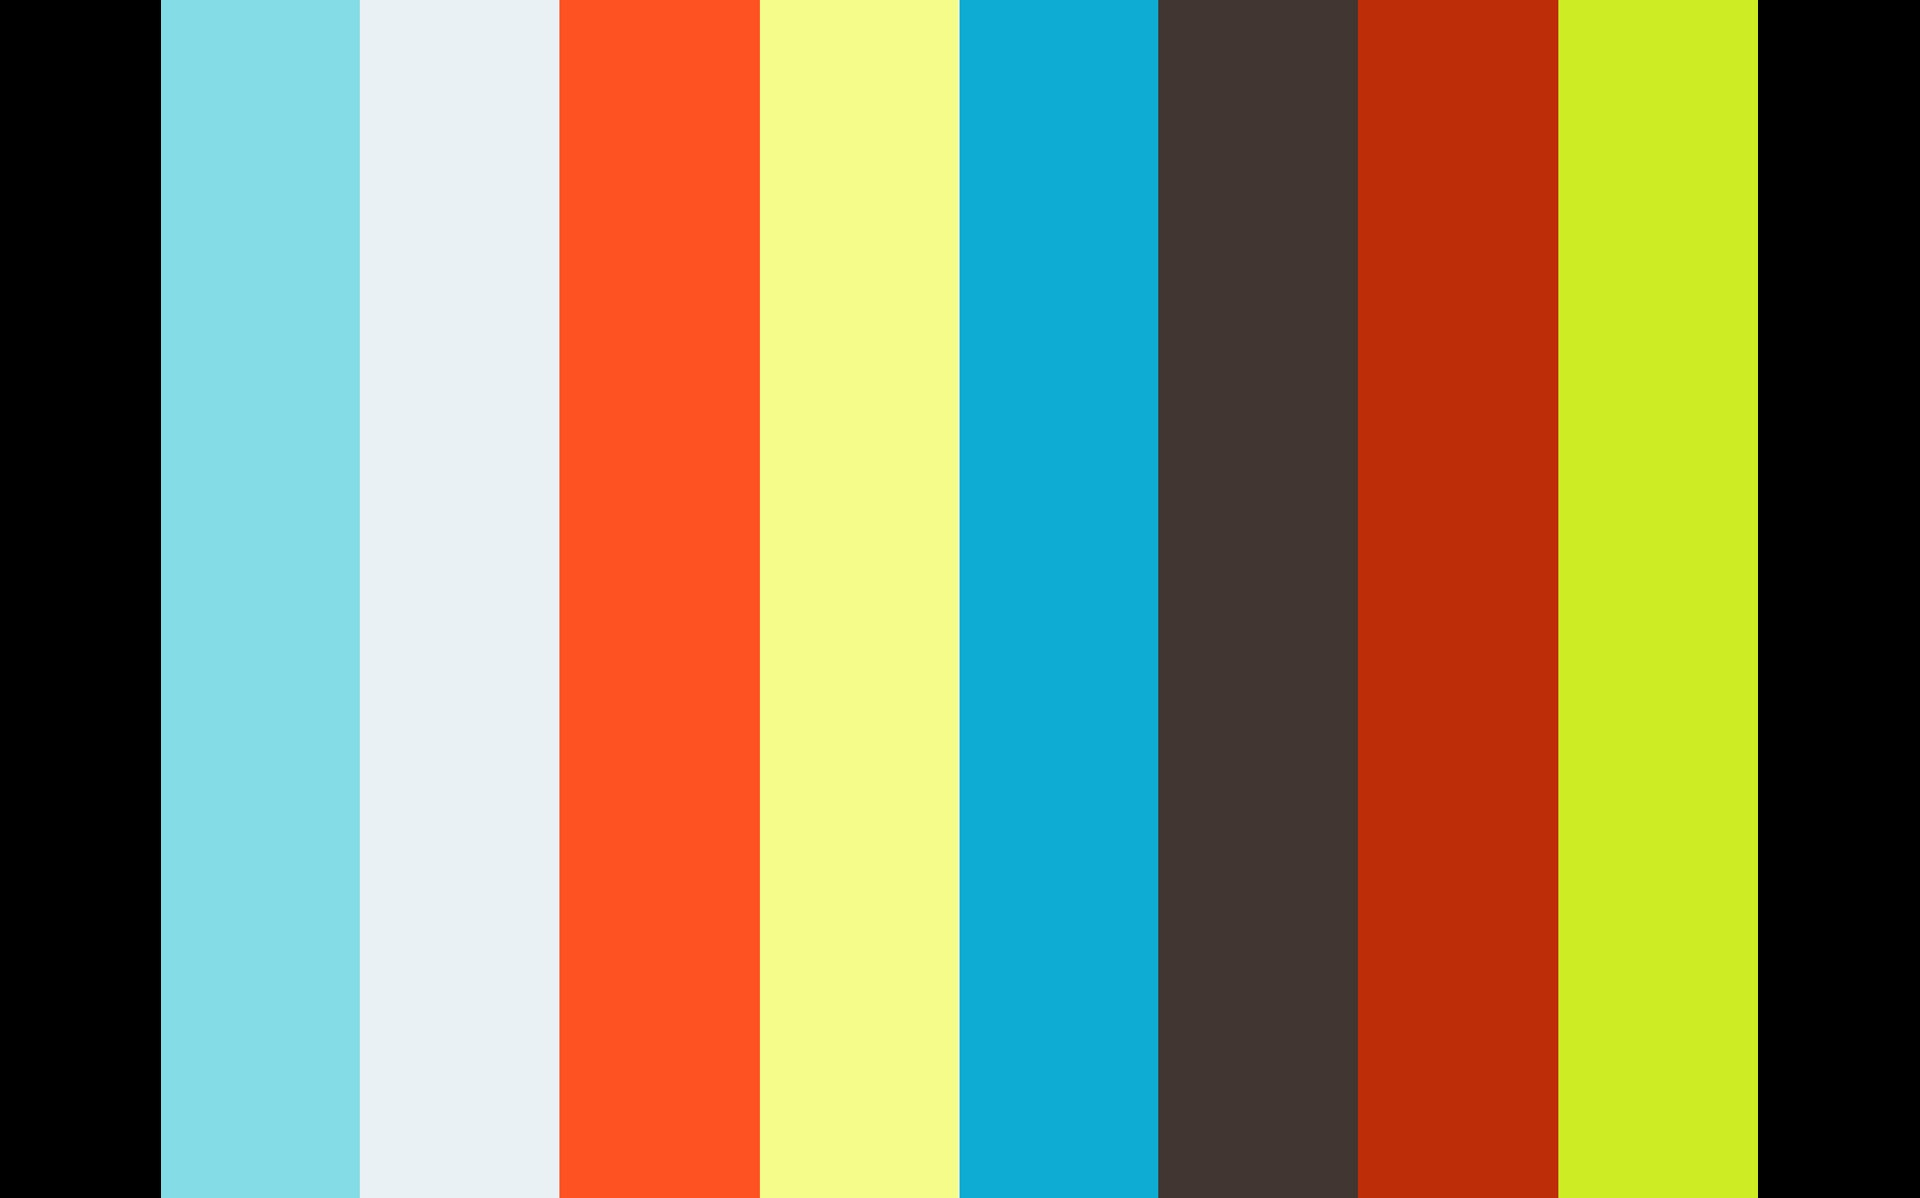 2020 New Feature Series - Multi Axis